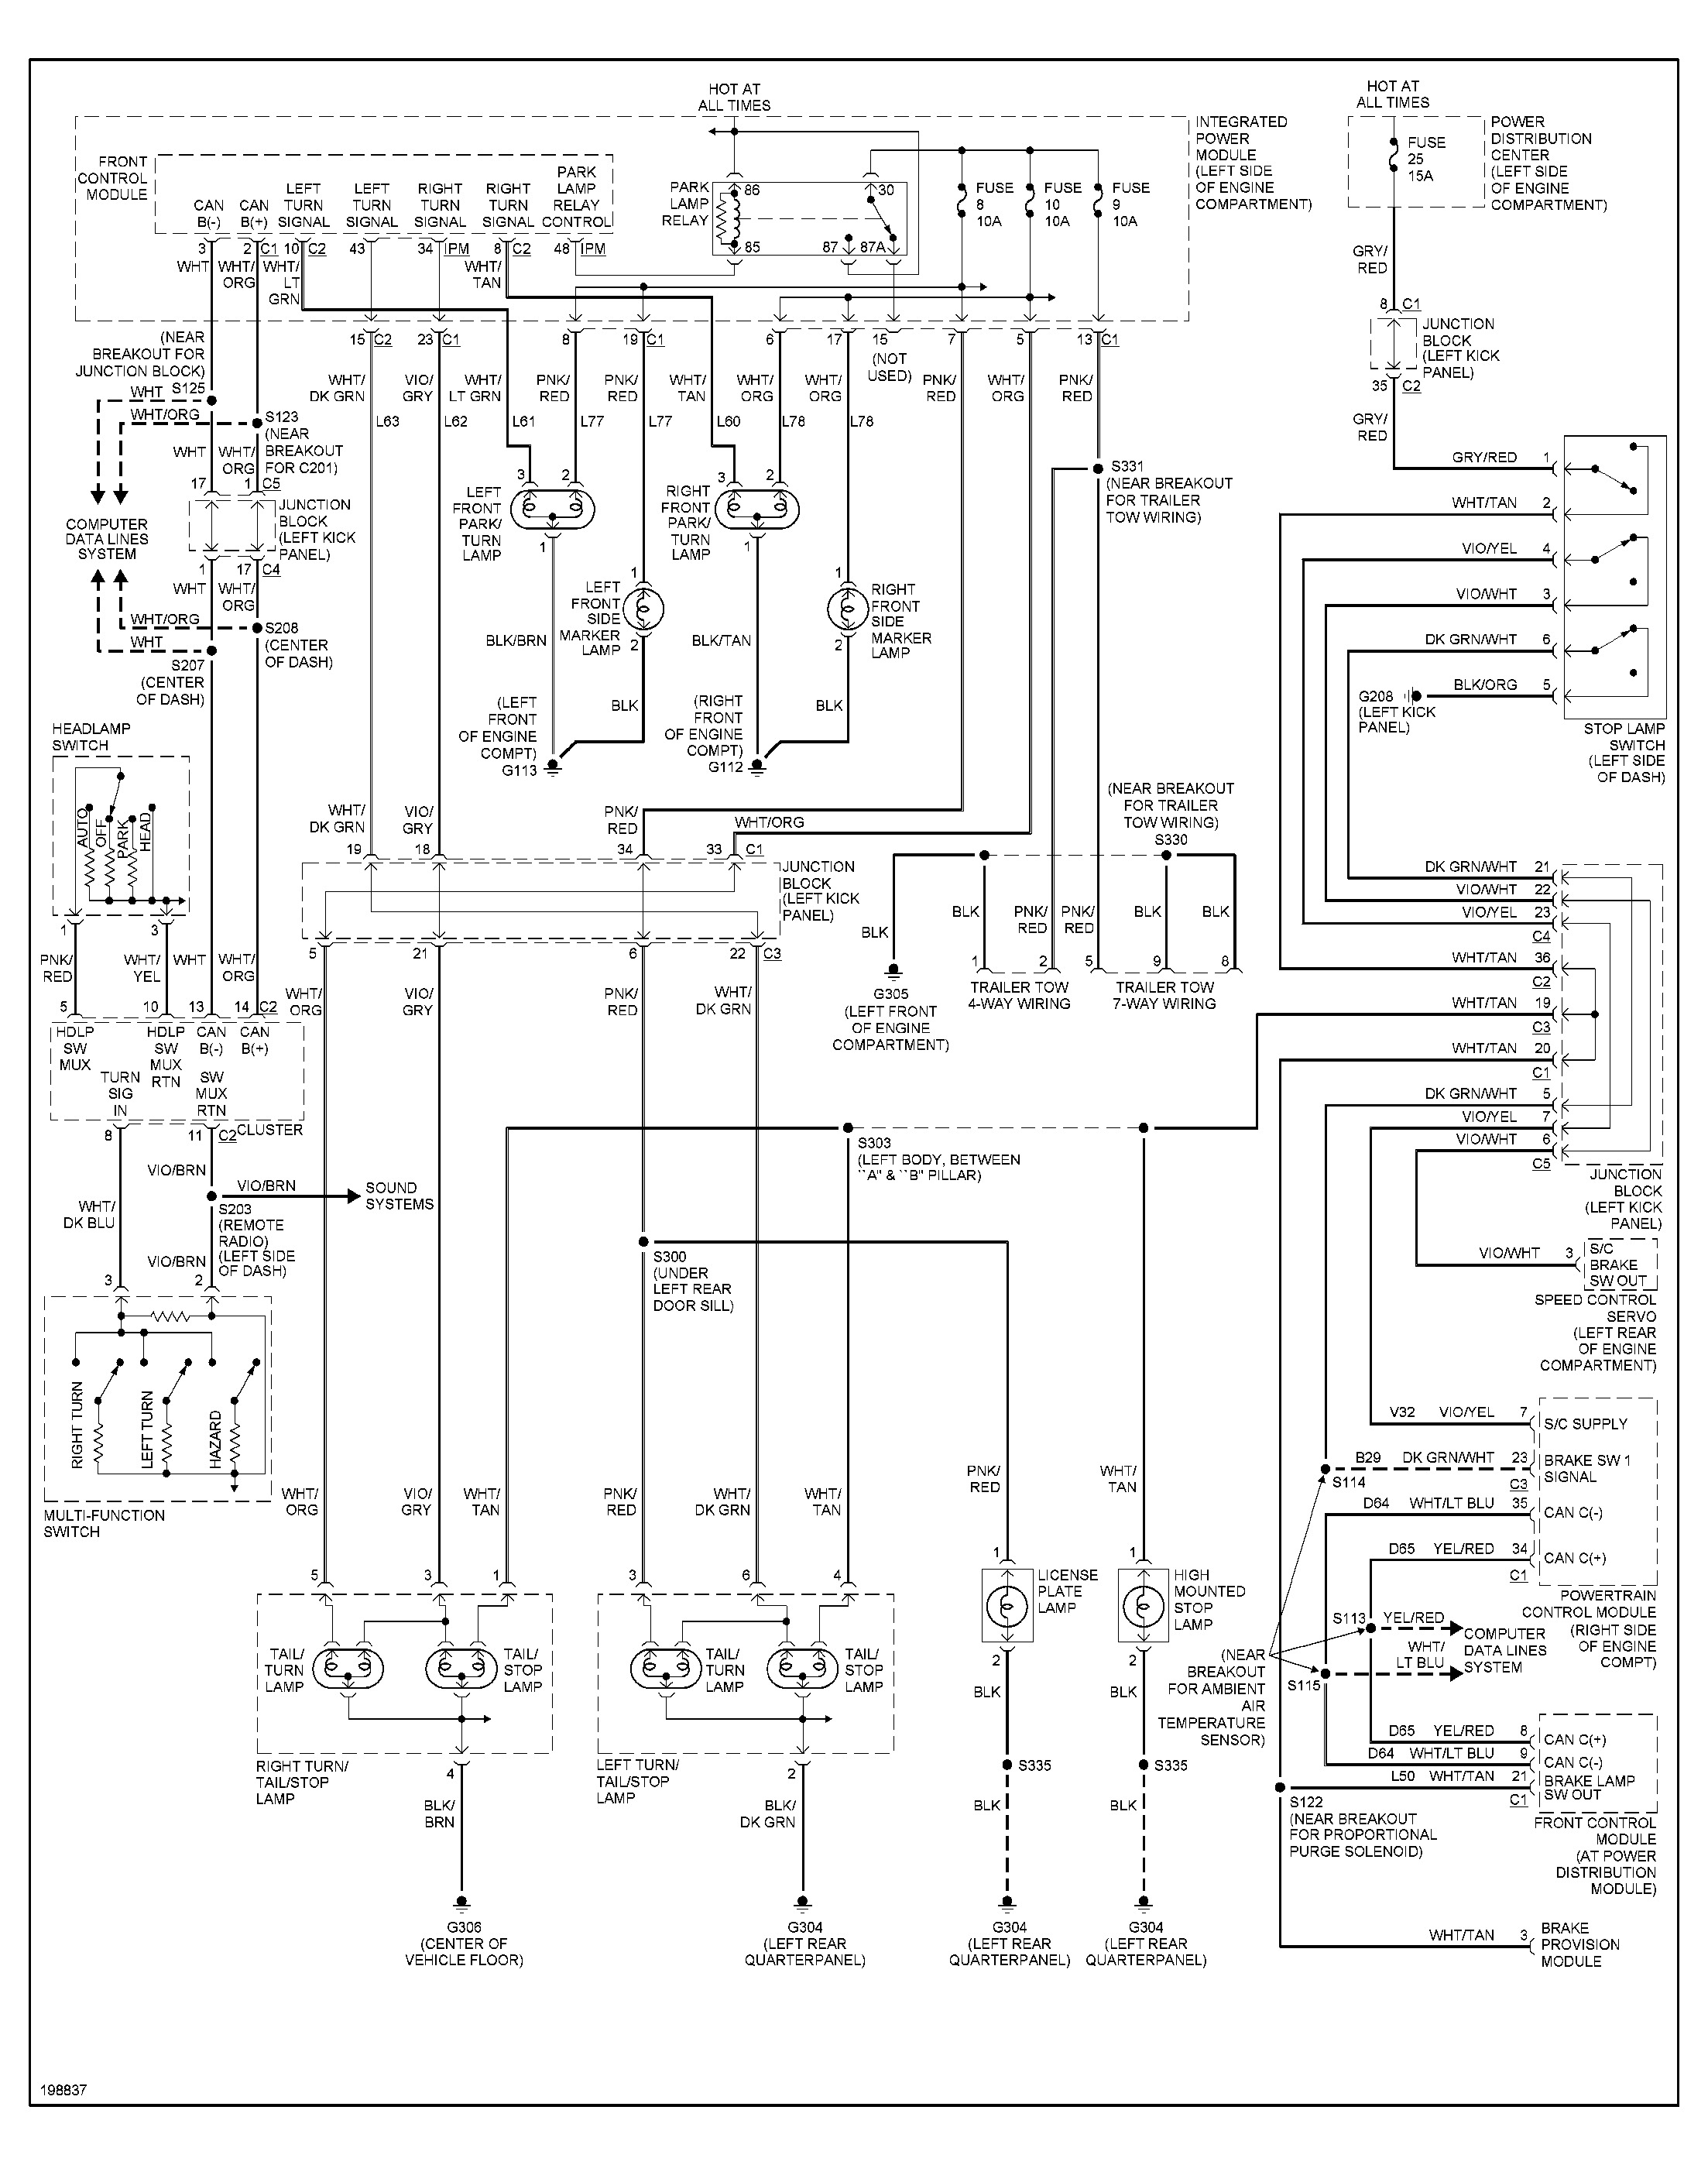 2005 Dodge Durango Wiring Diagram - On Wiring Diagram on 2004 gmc ford, 2004 gmc envoy, 2004 gmc neutral safety switch, 2004 gmc stereo wiring, 2004 gmc motor, 2004 gmc oil filter, 2004 gmc headlight, 2004 gmc alternator, 2004 gmc radio, 2004 gmc water pump, 2004 gmc silverado 3500 wiring, 2004 gmc transmission, 2004 gmc ignition switch, 2004 gmc dash lights, 2004 gmc fuel gauge, 2001 gmc sierra transmission diagram, 2004 gmc wheels, 2004 gmc speedometer, 2004 gmc compressor, 2004 gmc 6 inch lift,